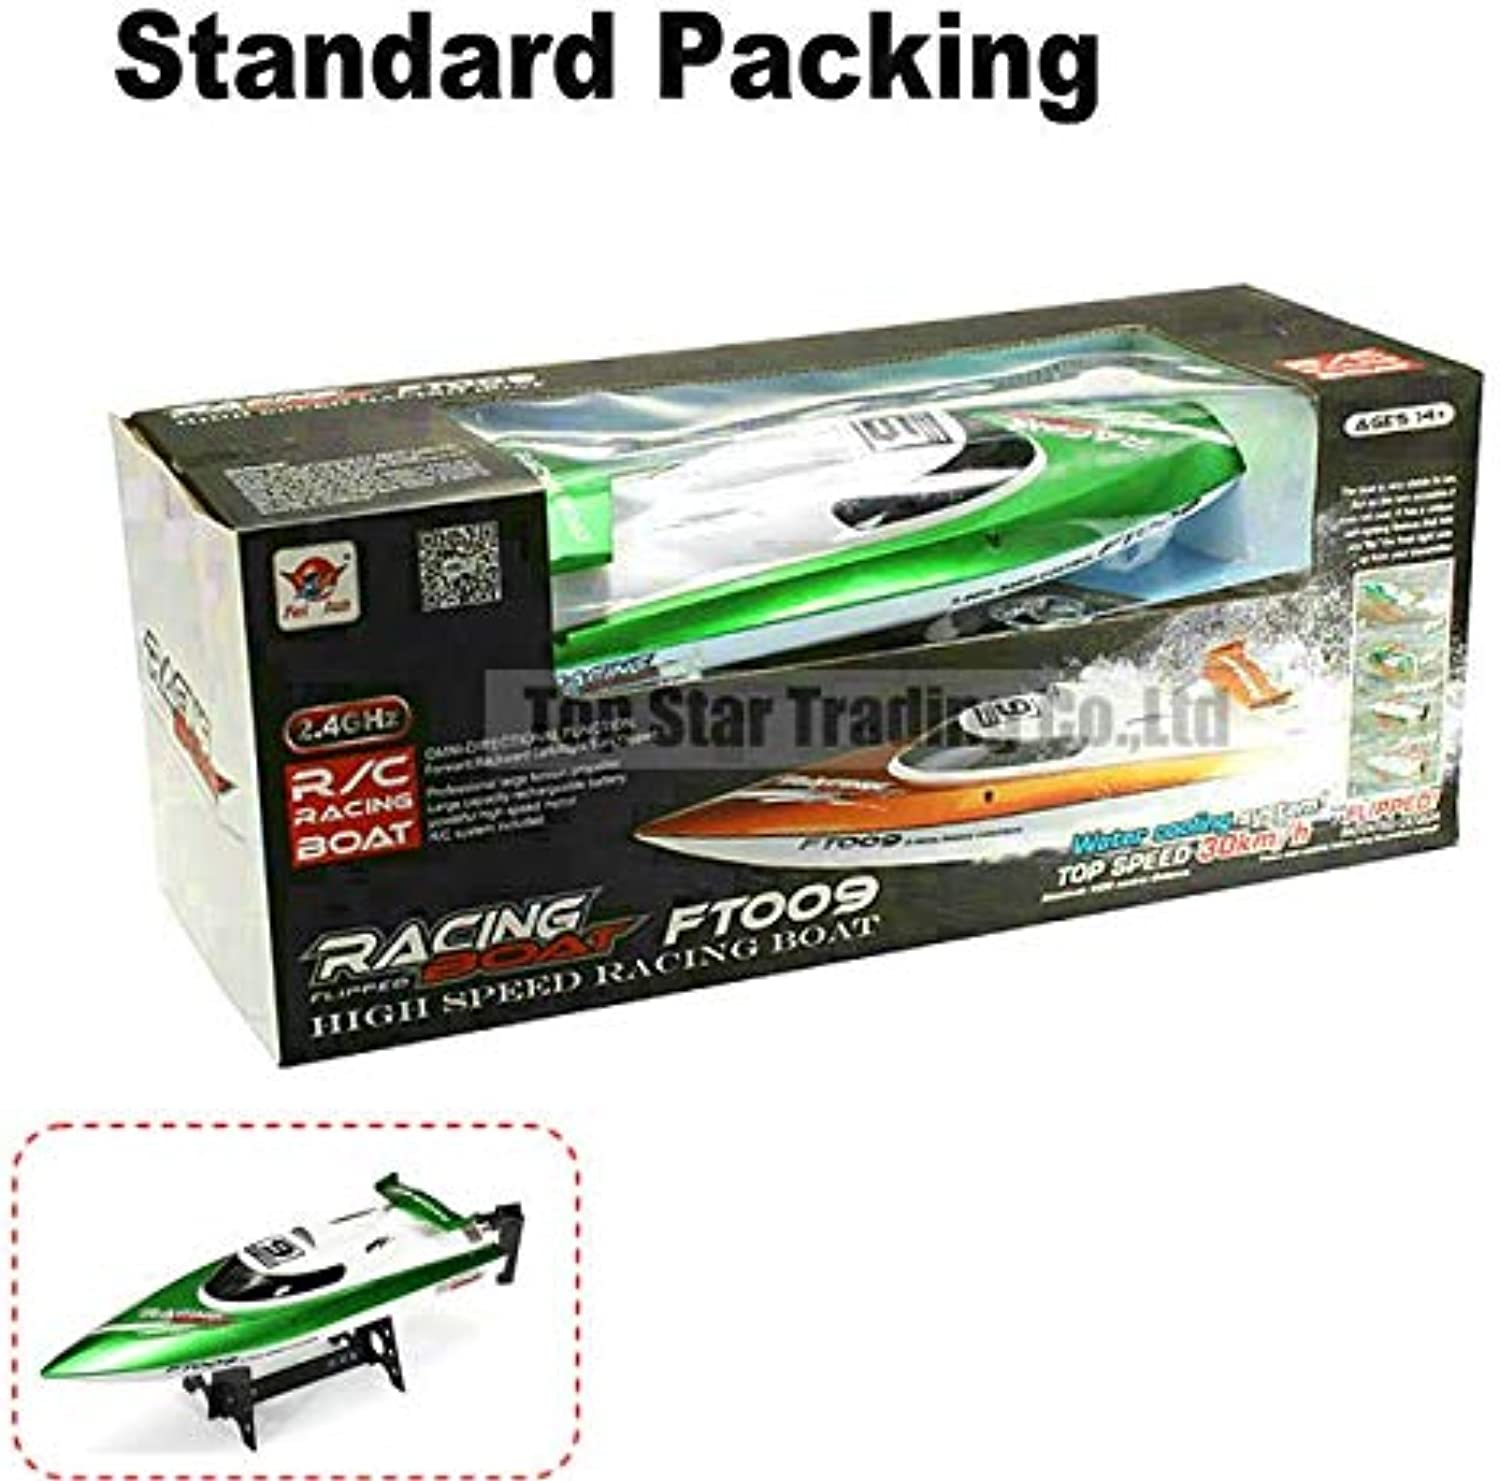 Generic Ft009 2.4g High Speed Racing Rc Boat Ship with Water Cooling Motor System 30km h Vs Ft012 White